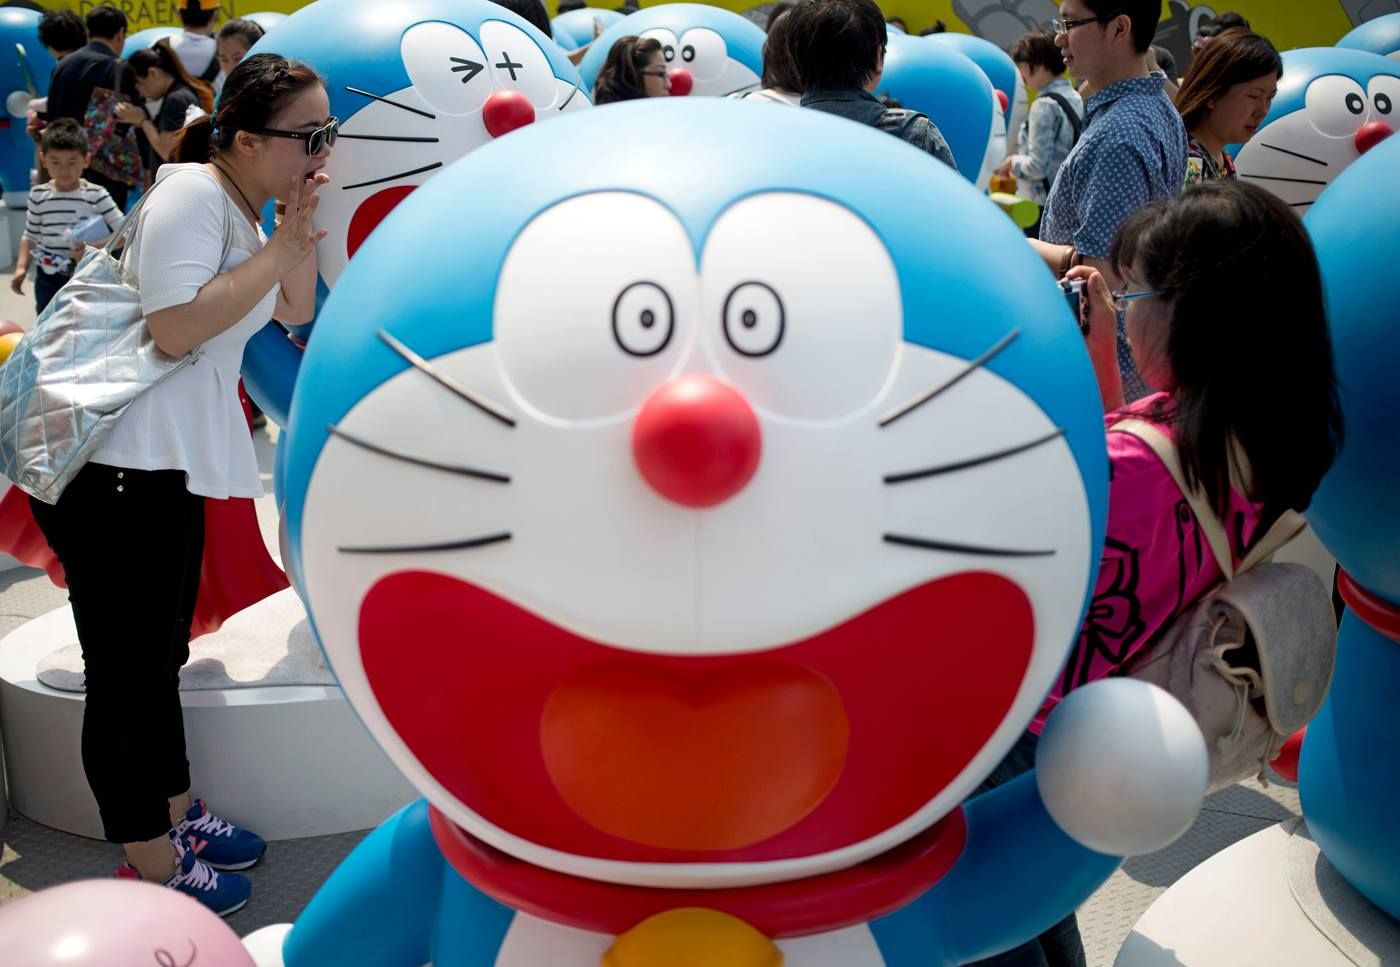 04/30/14. Visitors look at models of Doraemon, one of Japan's most popular animation characters, during the 100 Doraemon Secret Gadgets Expo held outside a shopping mall in Beijing, China, on Wednesday. The expo, which displays 100 life-sized Doraemon models with different gestures and facial expressions, runs until June 22. AP photo. Source; JapanToday